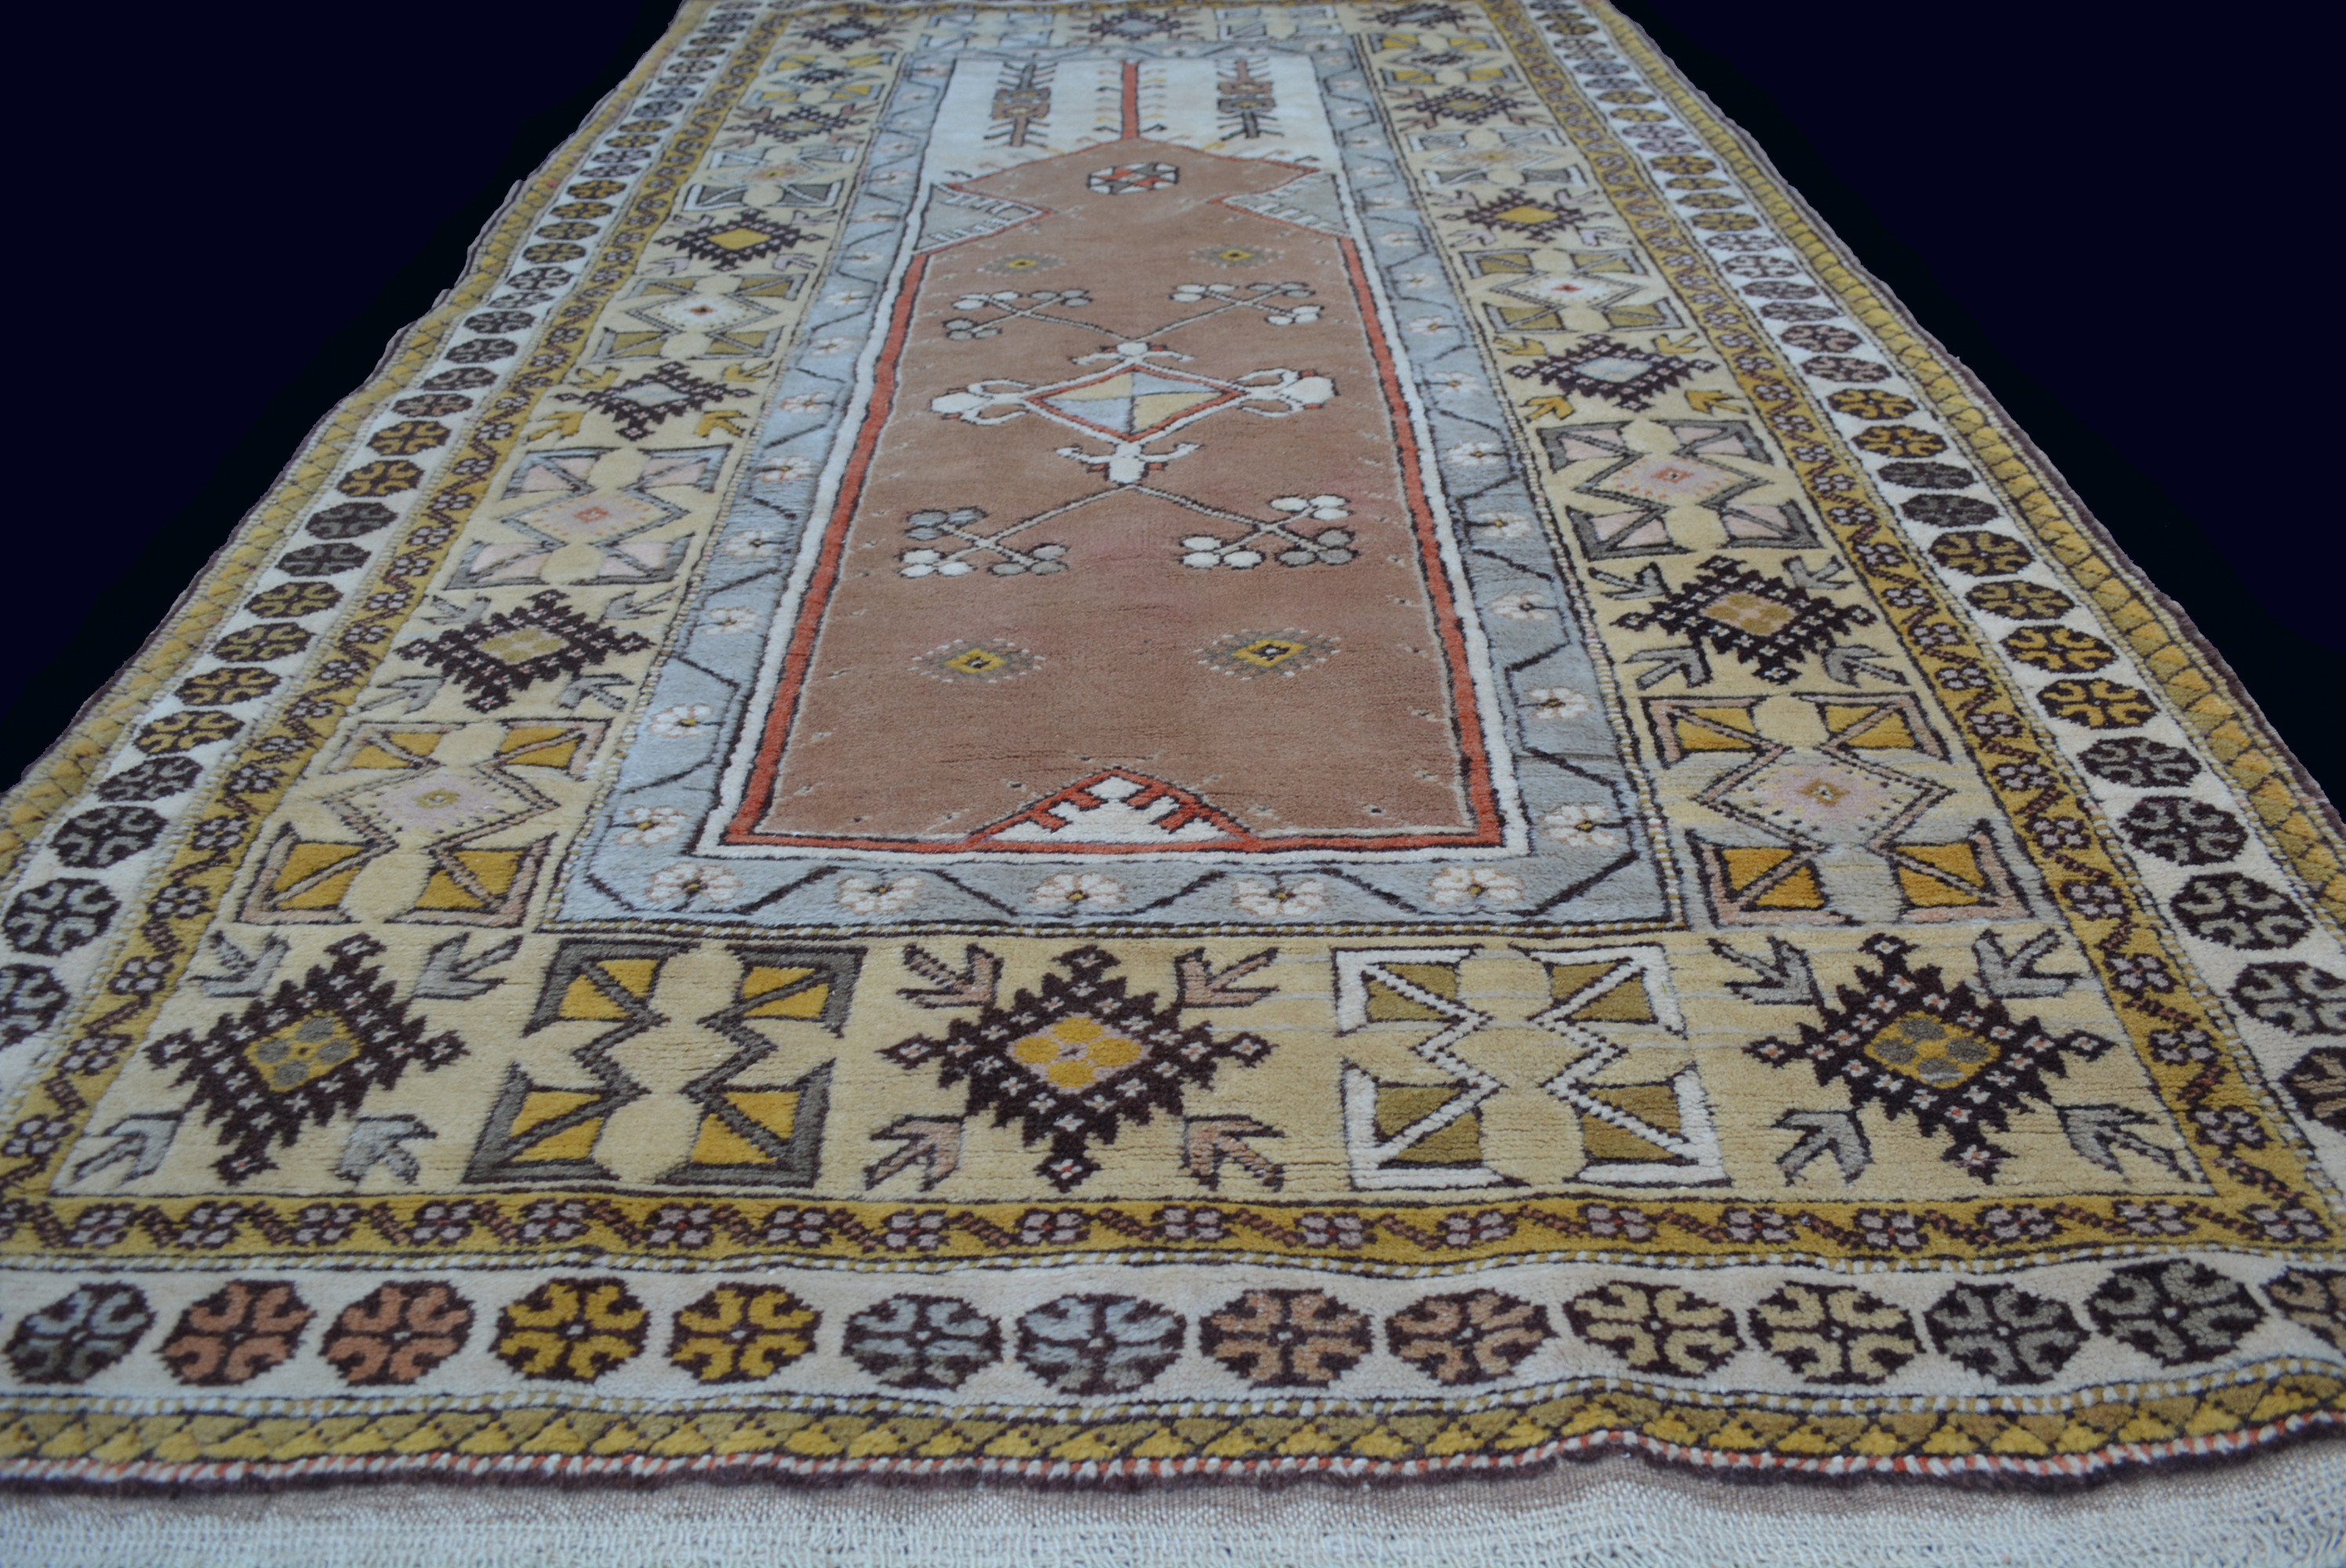 antik melas orient teppich anatolien wolle 220x120cm rug tapis tappeto alfombra ebay. Black Bedroom Furniture Sets. Home Design Ideas